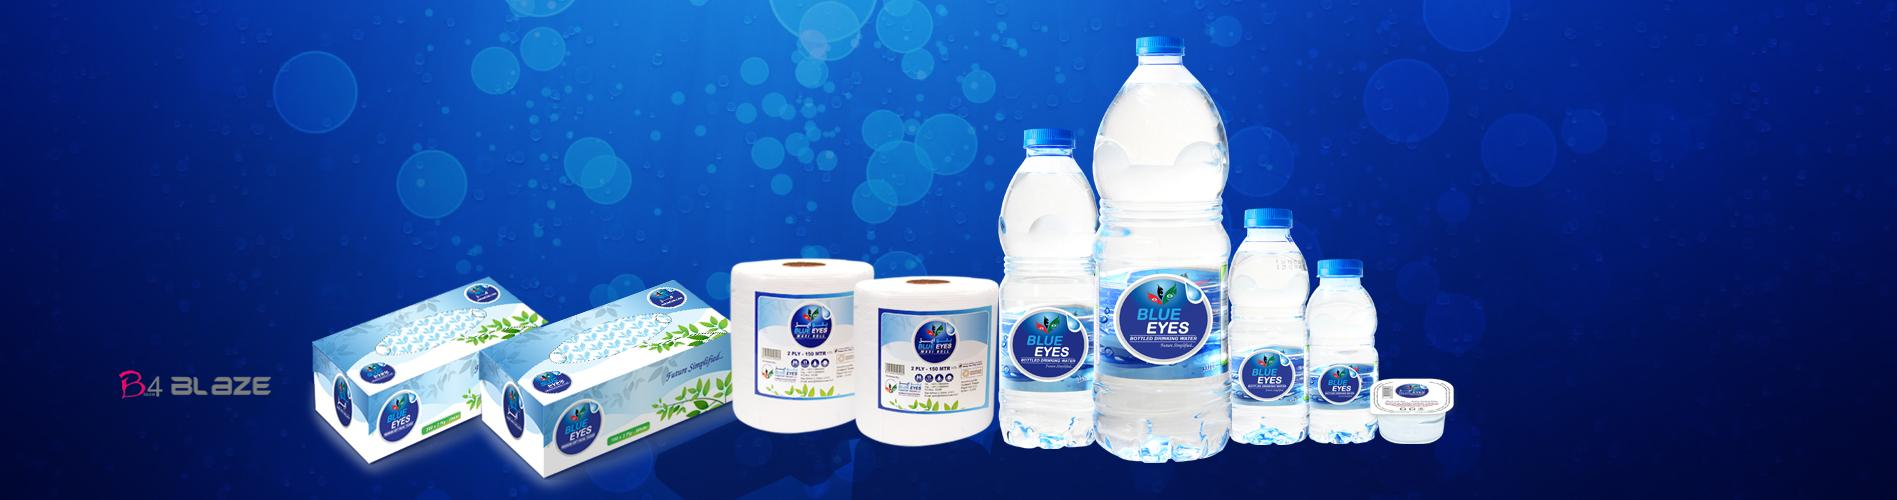 Blue Eyes Water products-banner